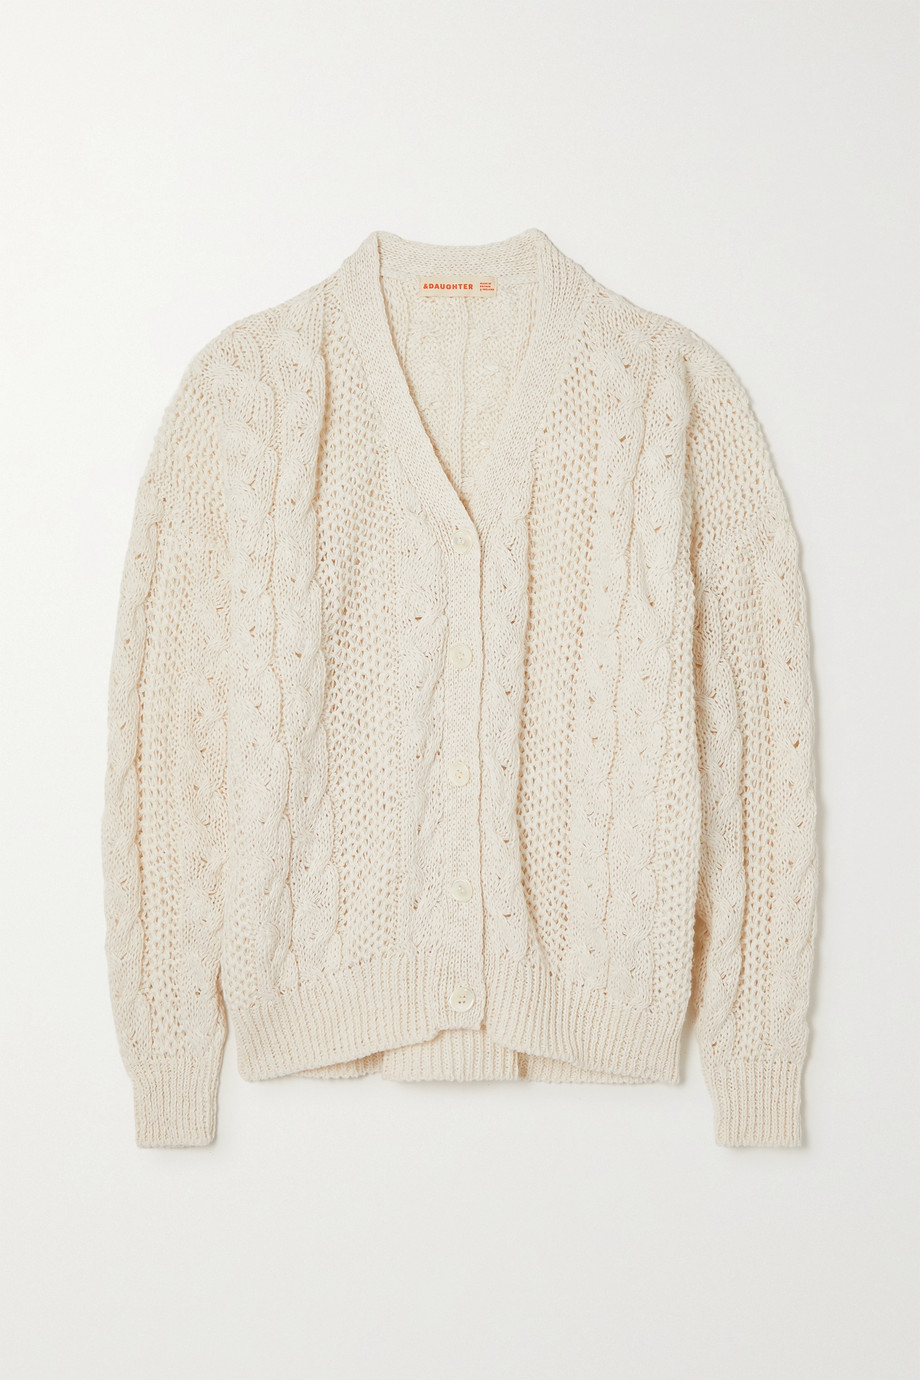 &Daughter + NET SUSTAIN cable-knit linen and cotton-blend cardigan